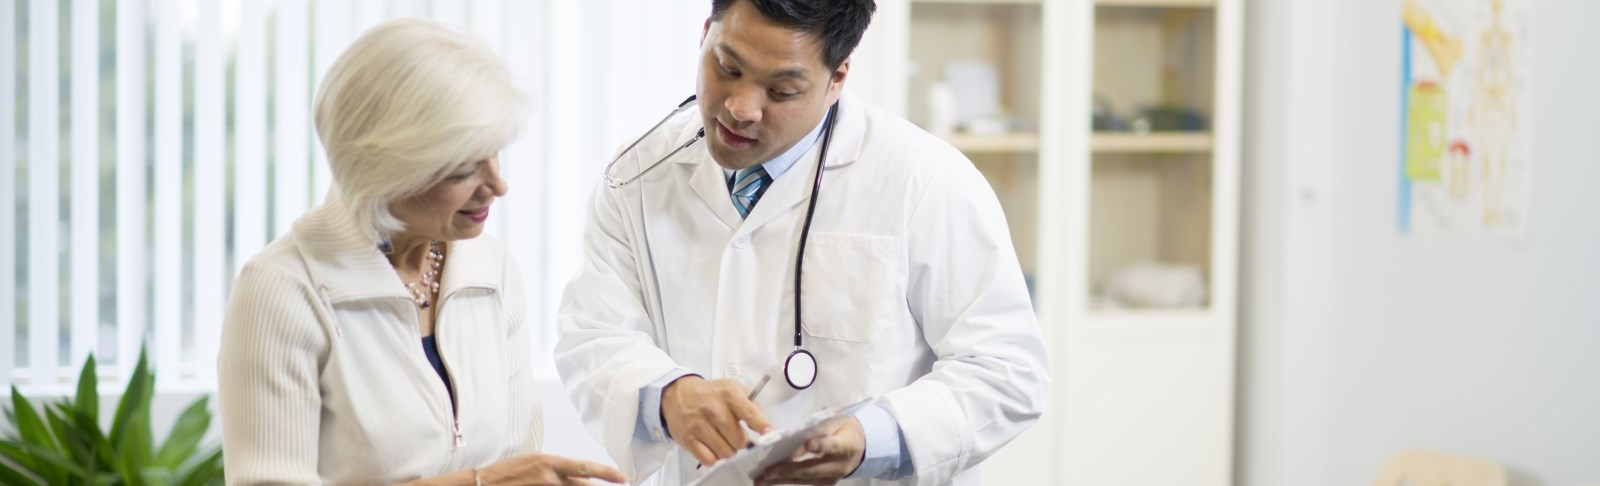 Doctor and patient reviewing chart information